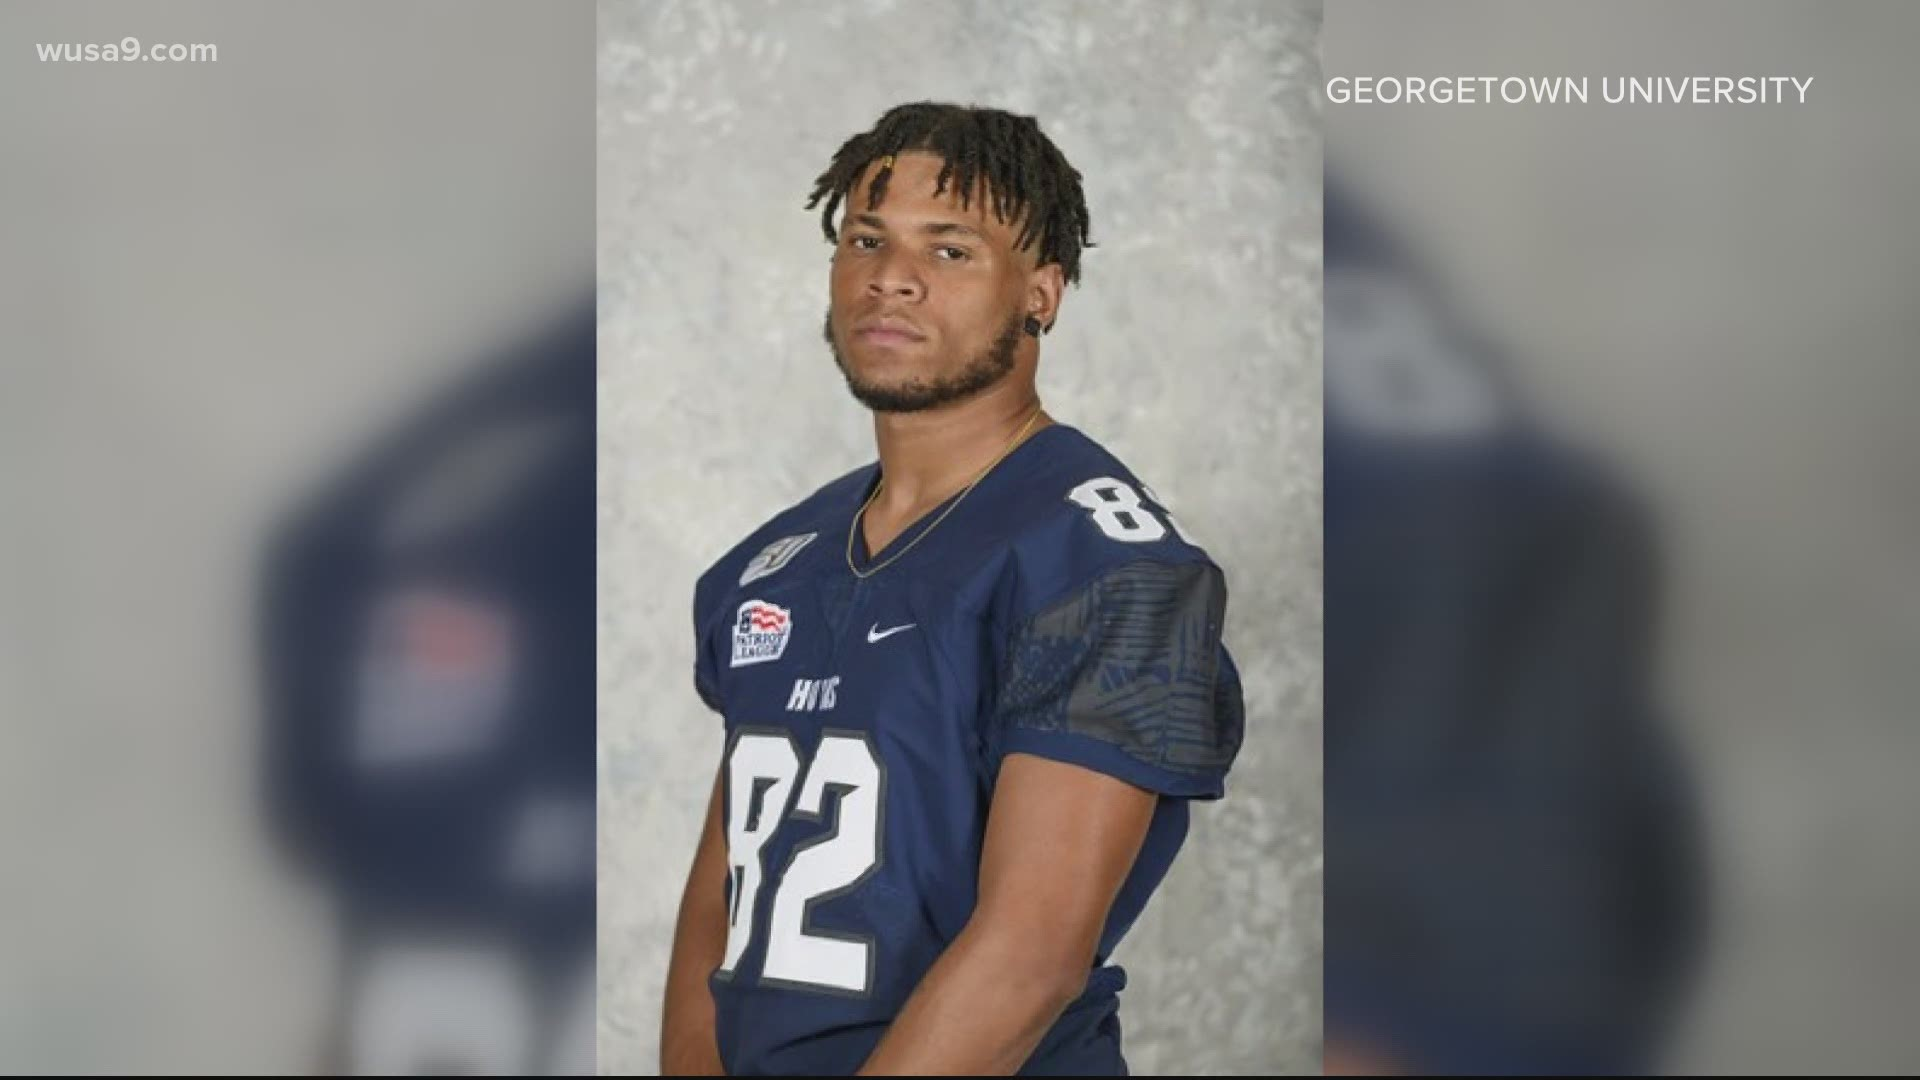 Georgetown University football player arrested, accused of murder